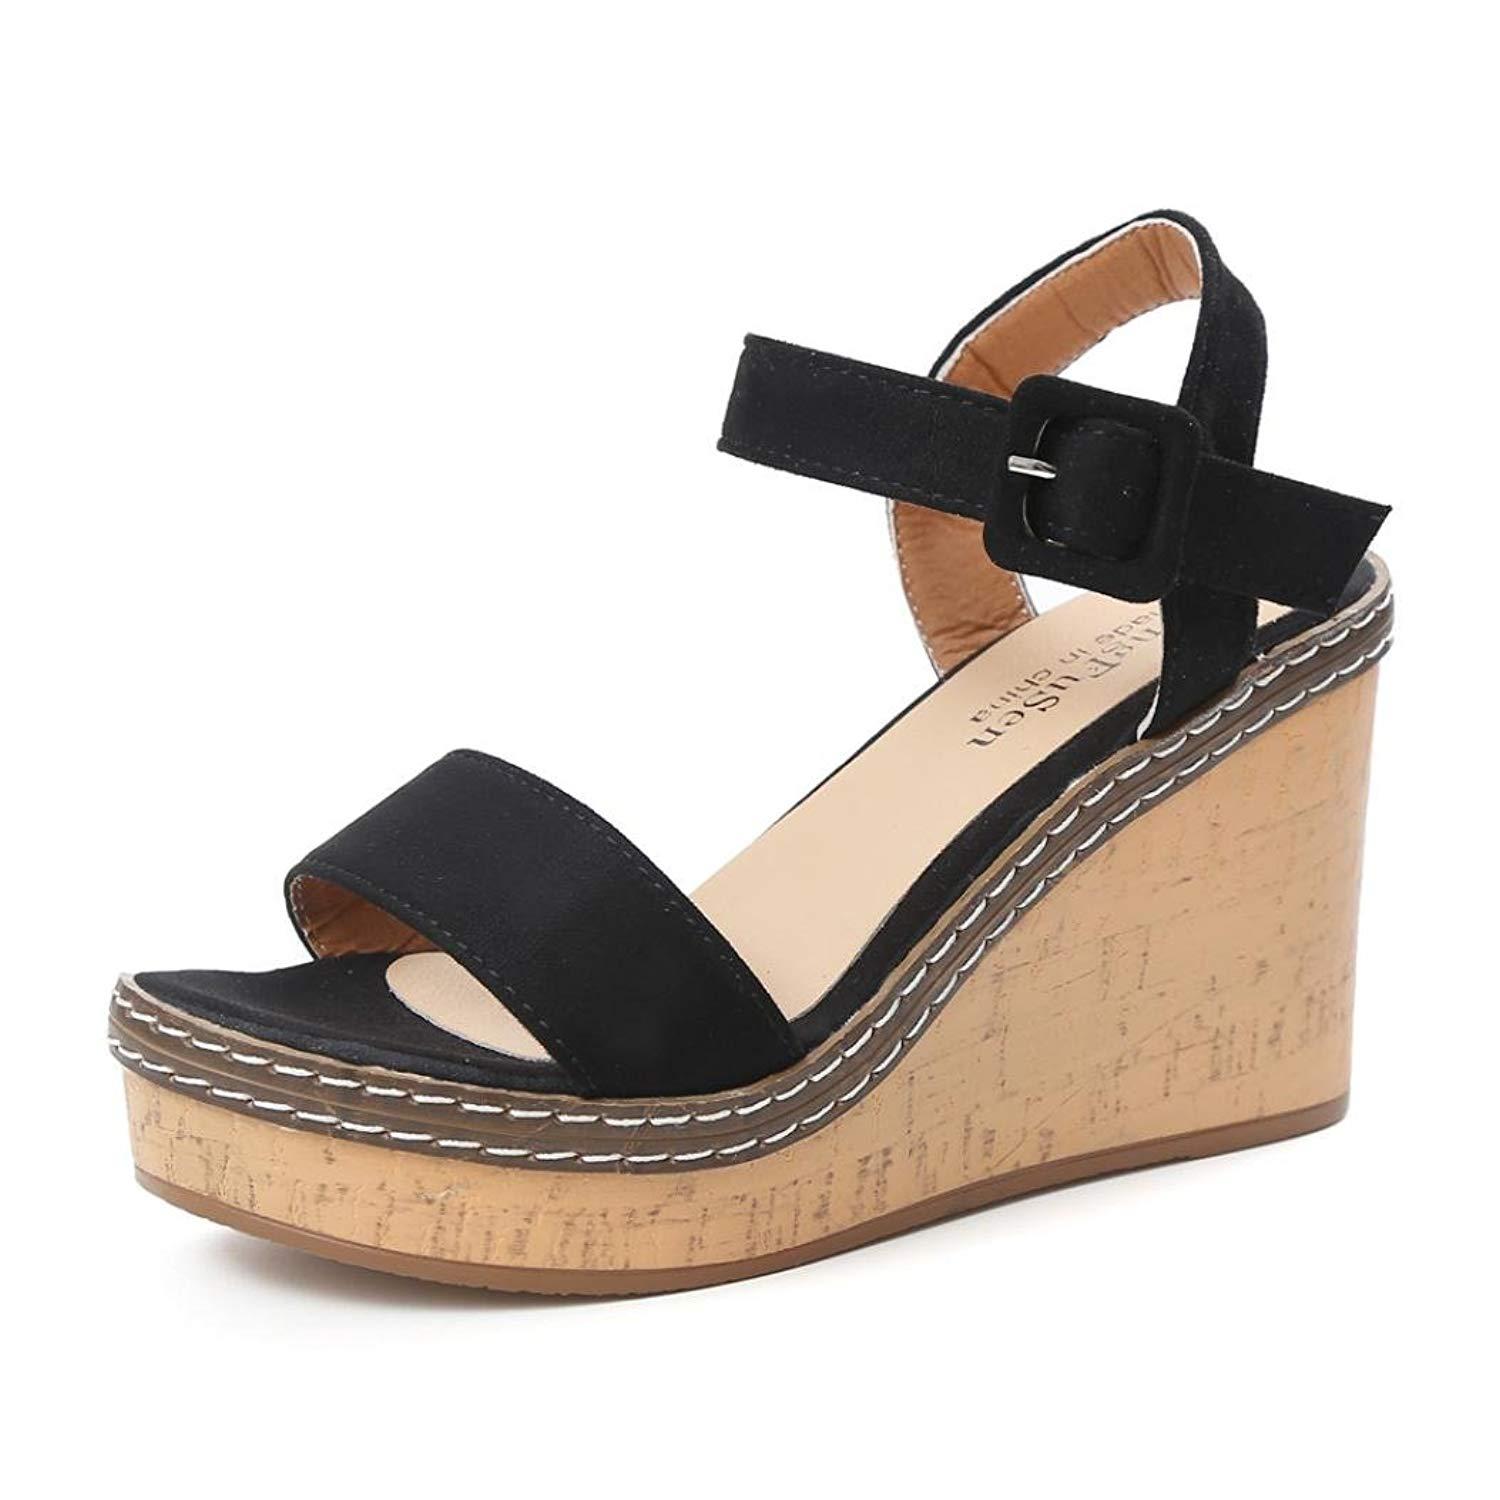 81c40ae49a Get Quotations · Sunbona Wedge Sandals for Women,Ladies Summer Peep Toe  Ankle Buckle Platform High Heels Wedge